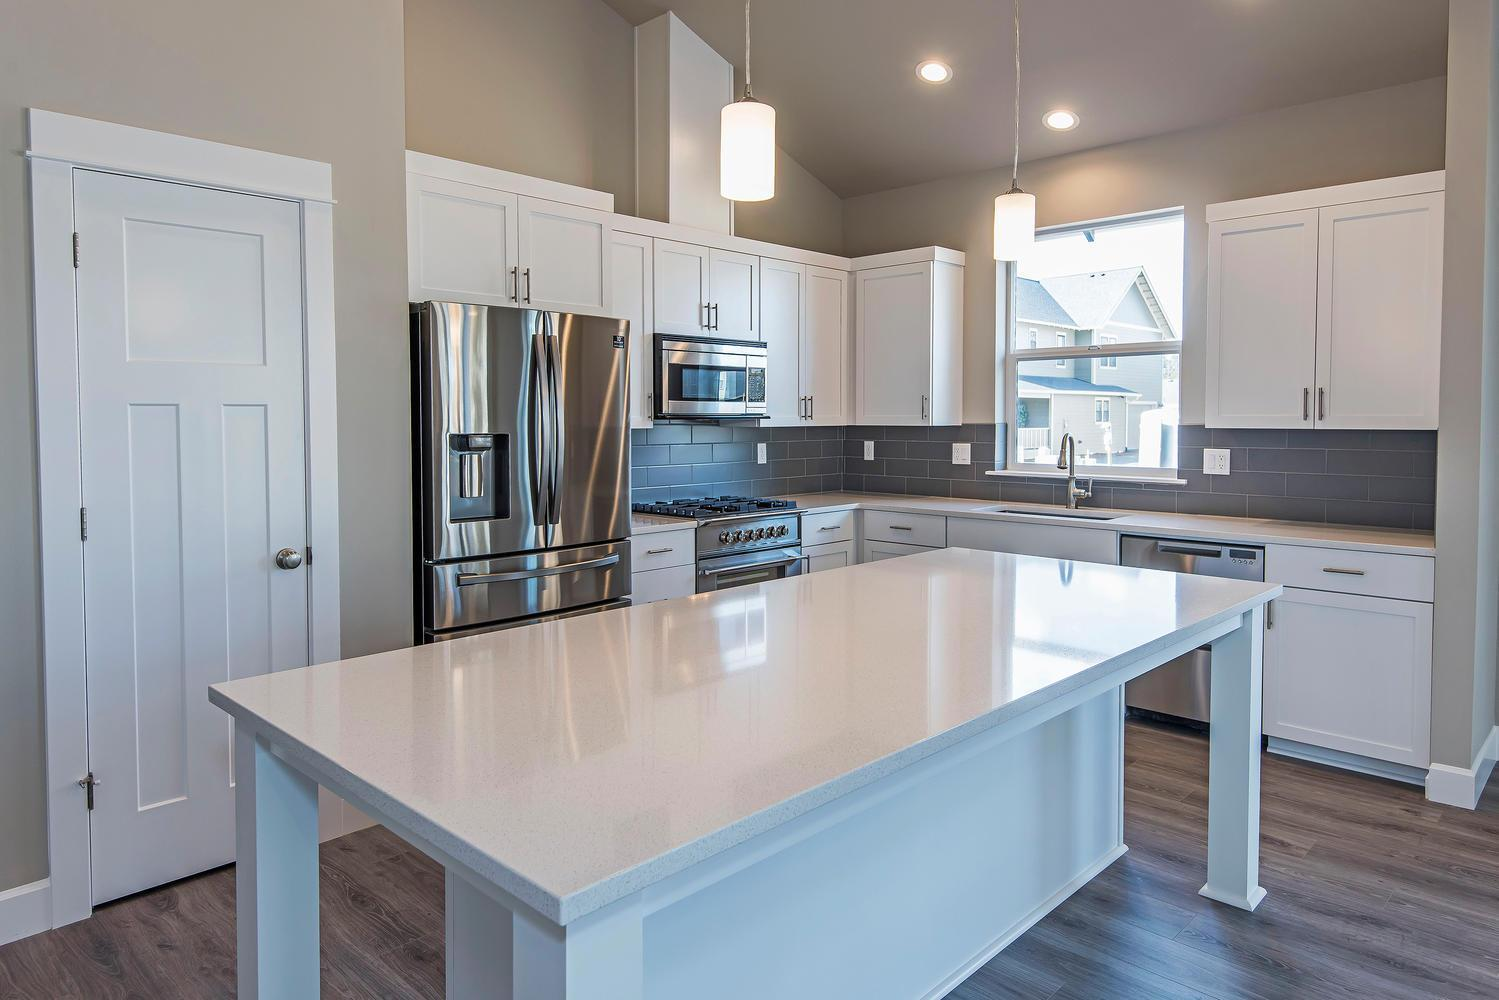 Kitchen featured in The Douglas By Woodhill Homes in Central Oregon, OR